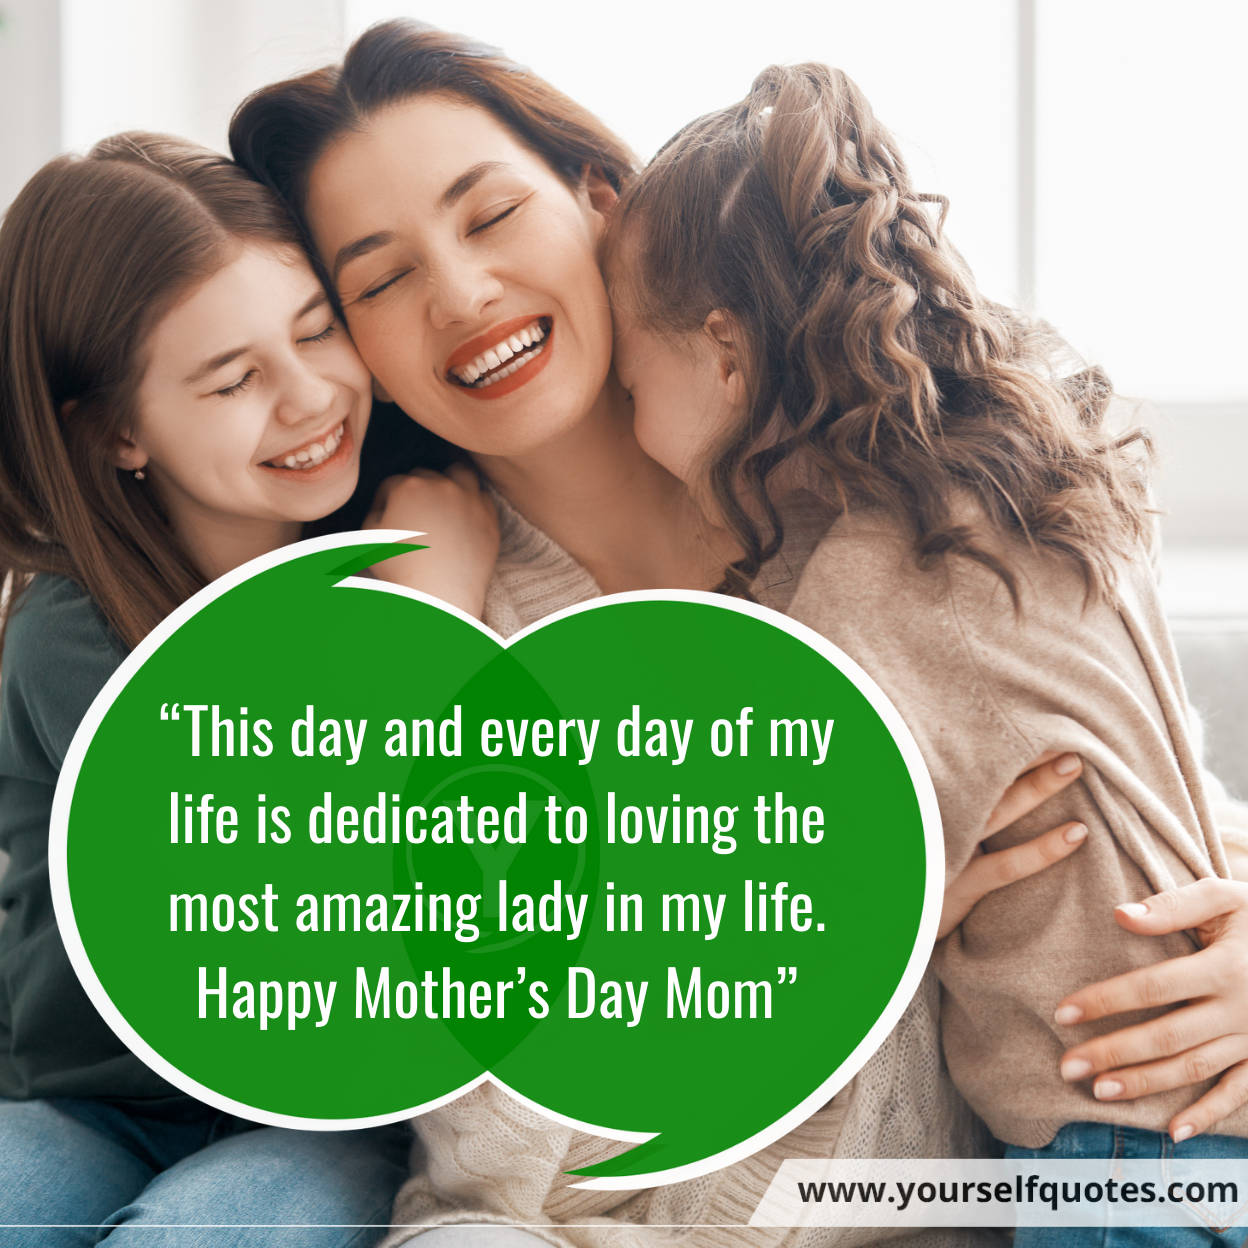 Happy Mother's Day Mom Photos